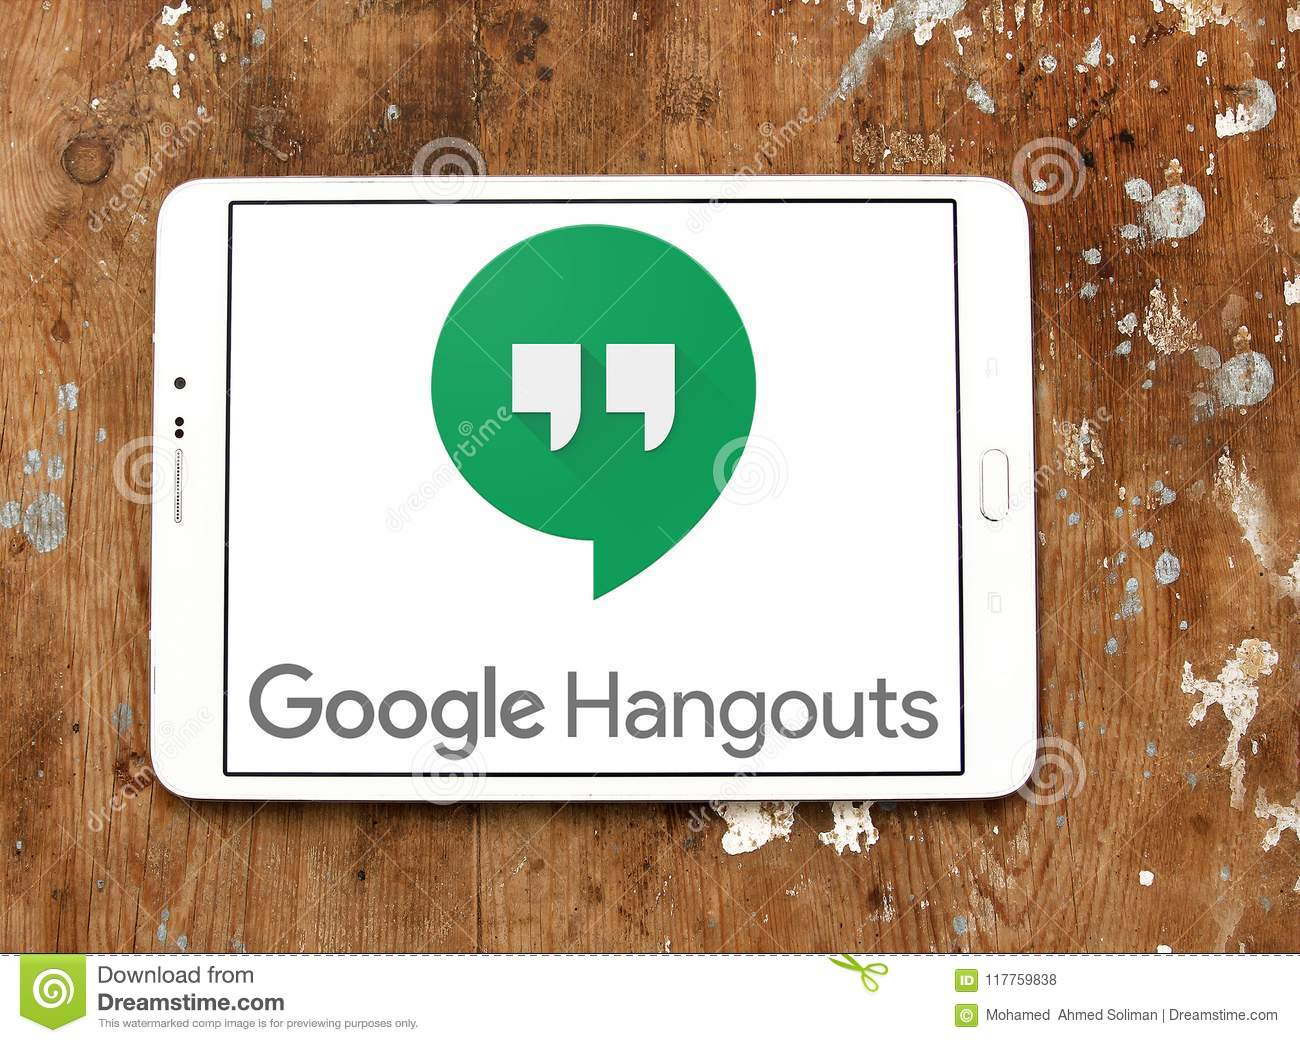 Google Hangouts logo editorial stock photo  Image of famous - 117759838